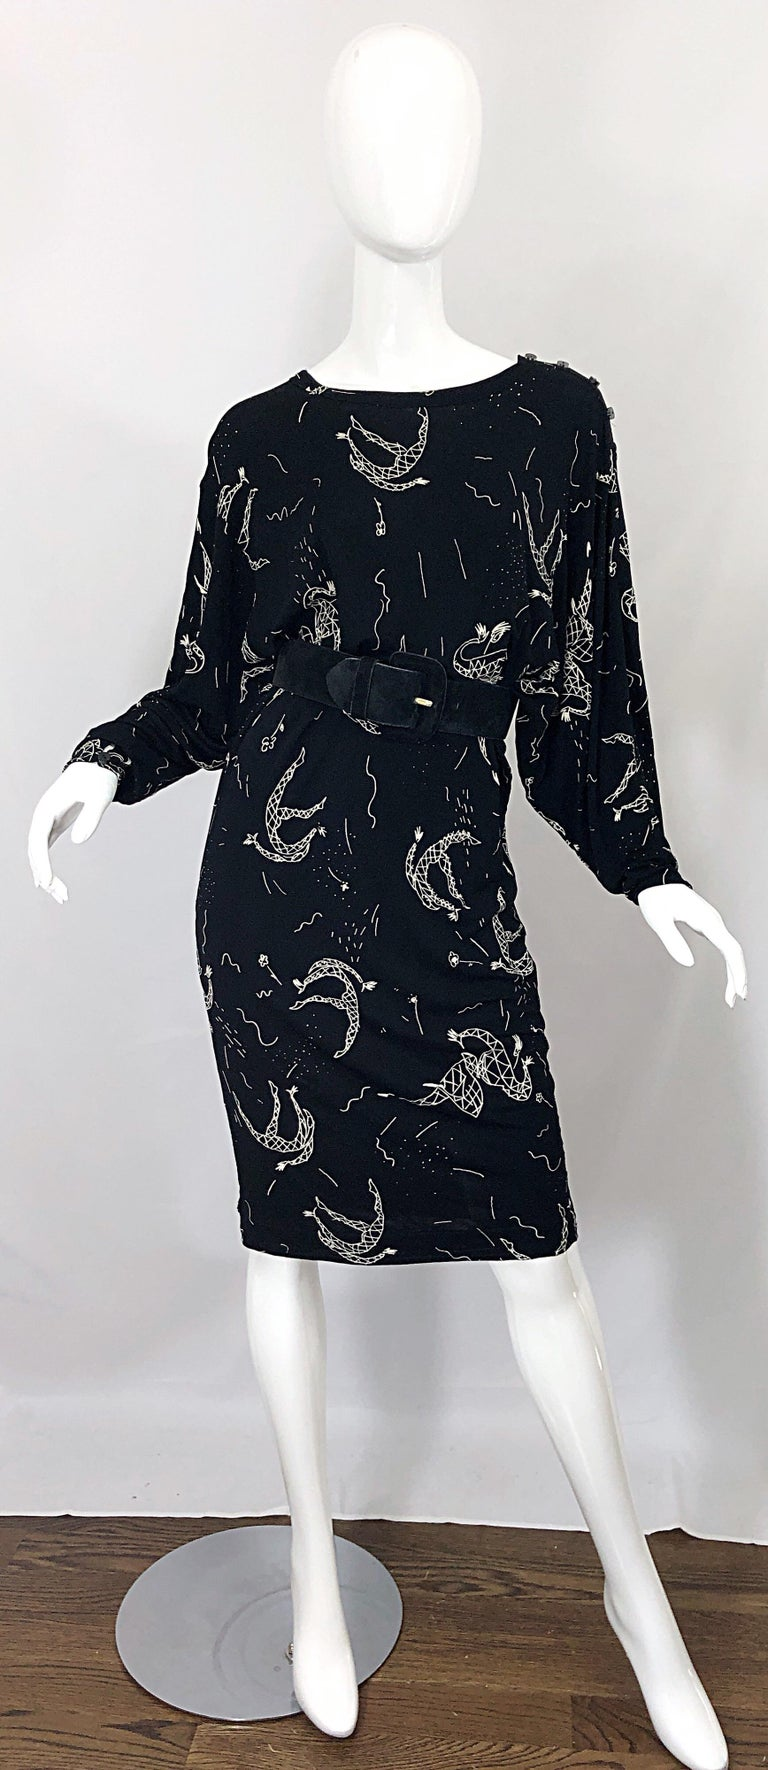 Amen Wardy 1980s Hand Painted Novelty Harlequin Print Black and White 80s Dress For Sale 3